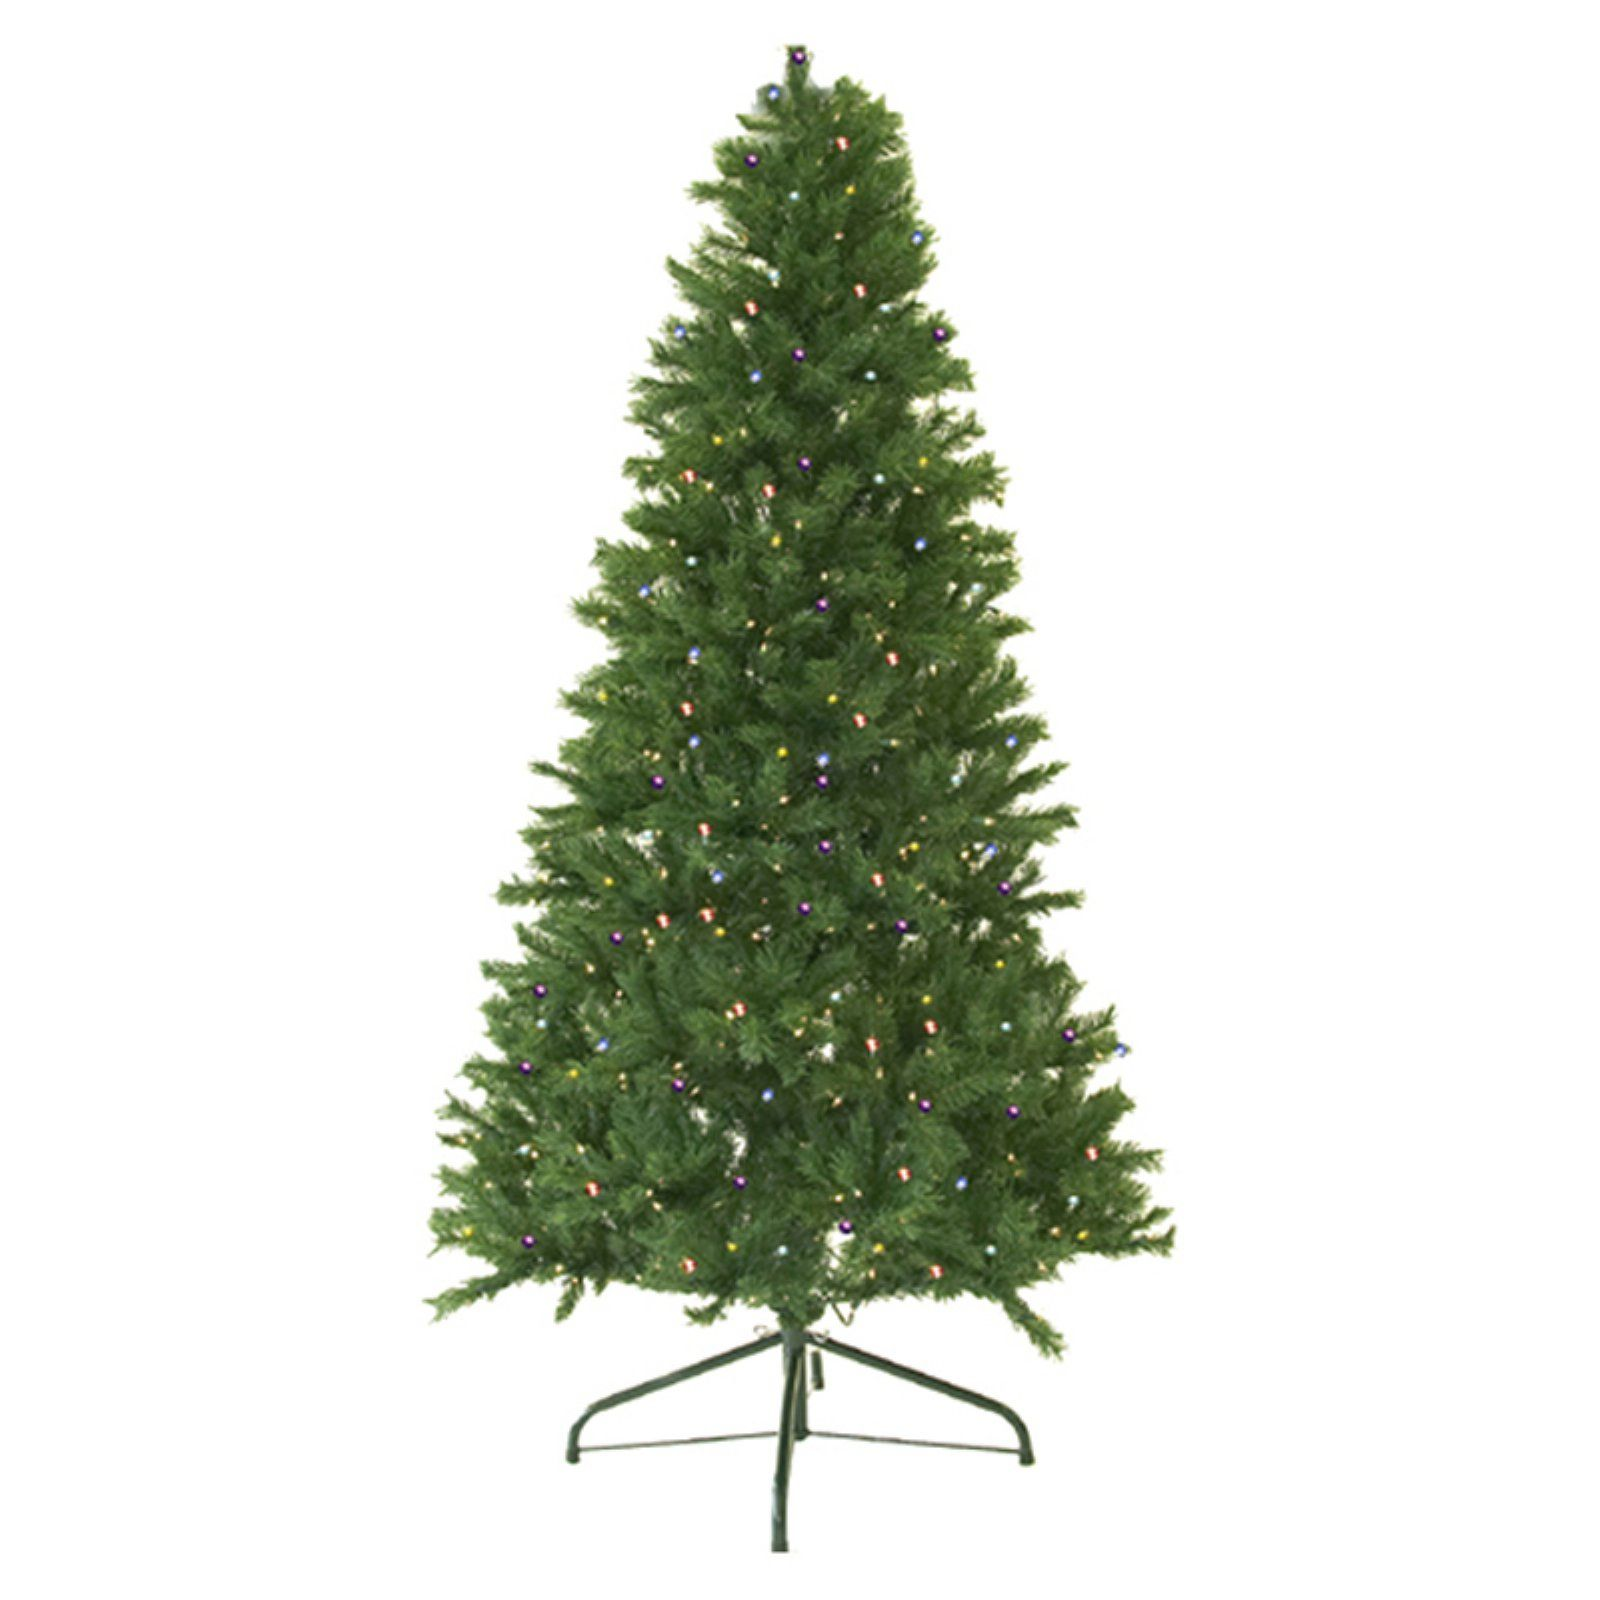 Northlight Pre Lit Canadian Pine Artificial Christmas Tree Multicolor Christmas Tree Clear Lights Pine Christmas Tree Artificial Xmas Trees